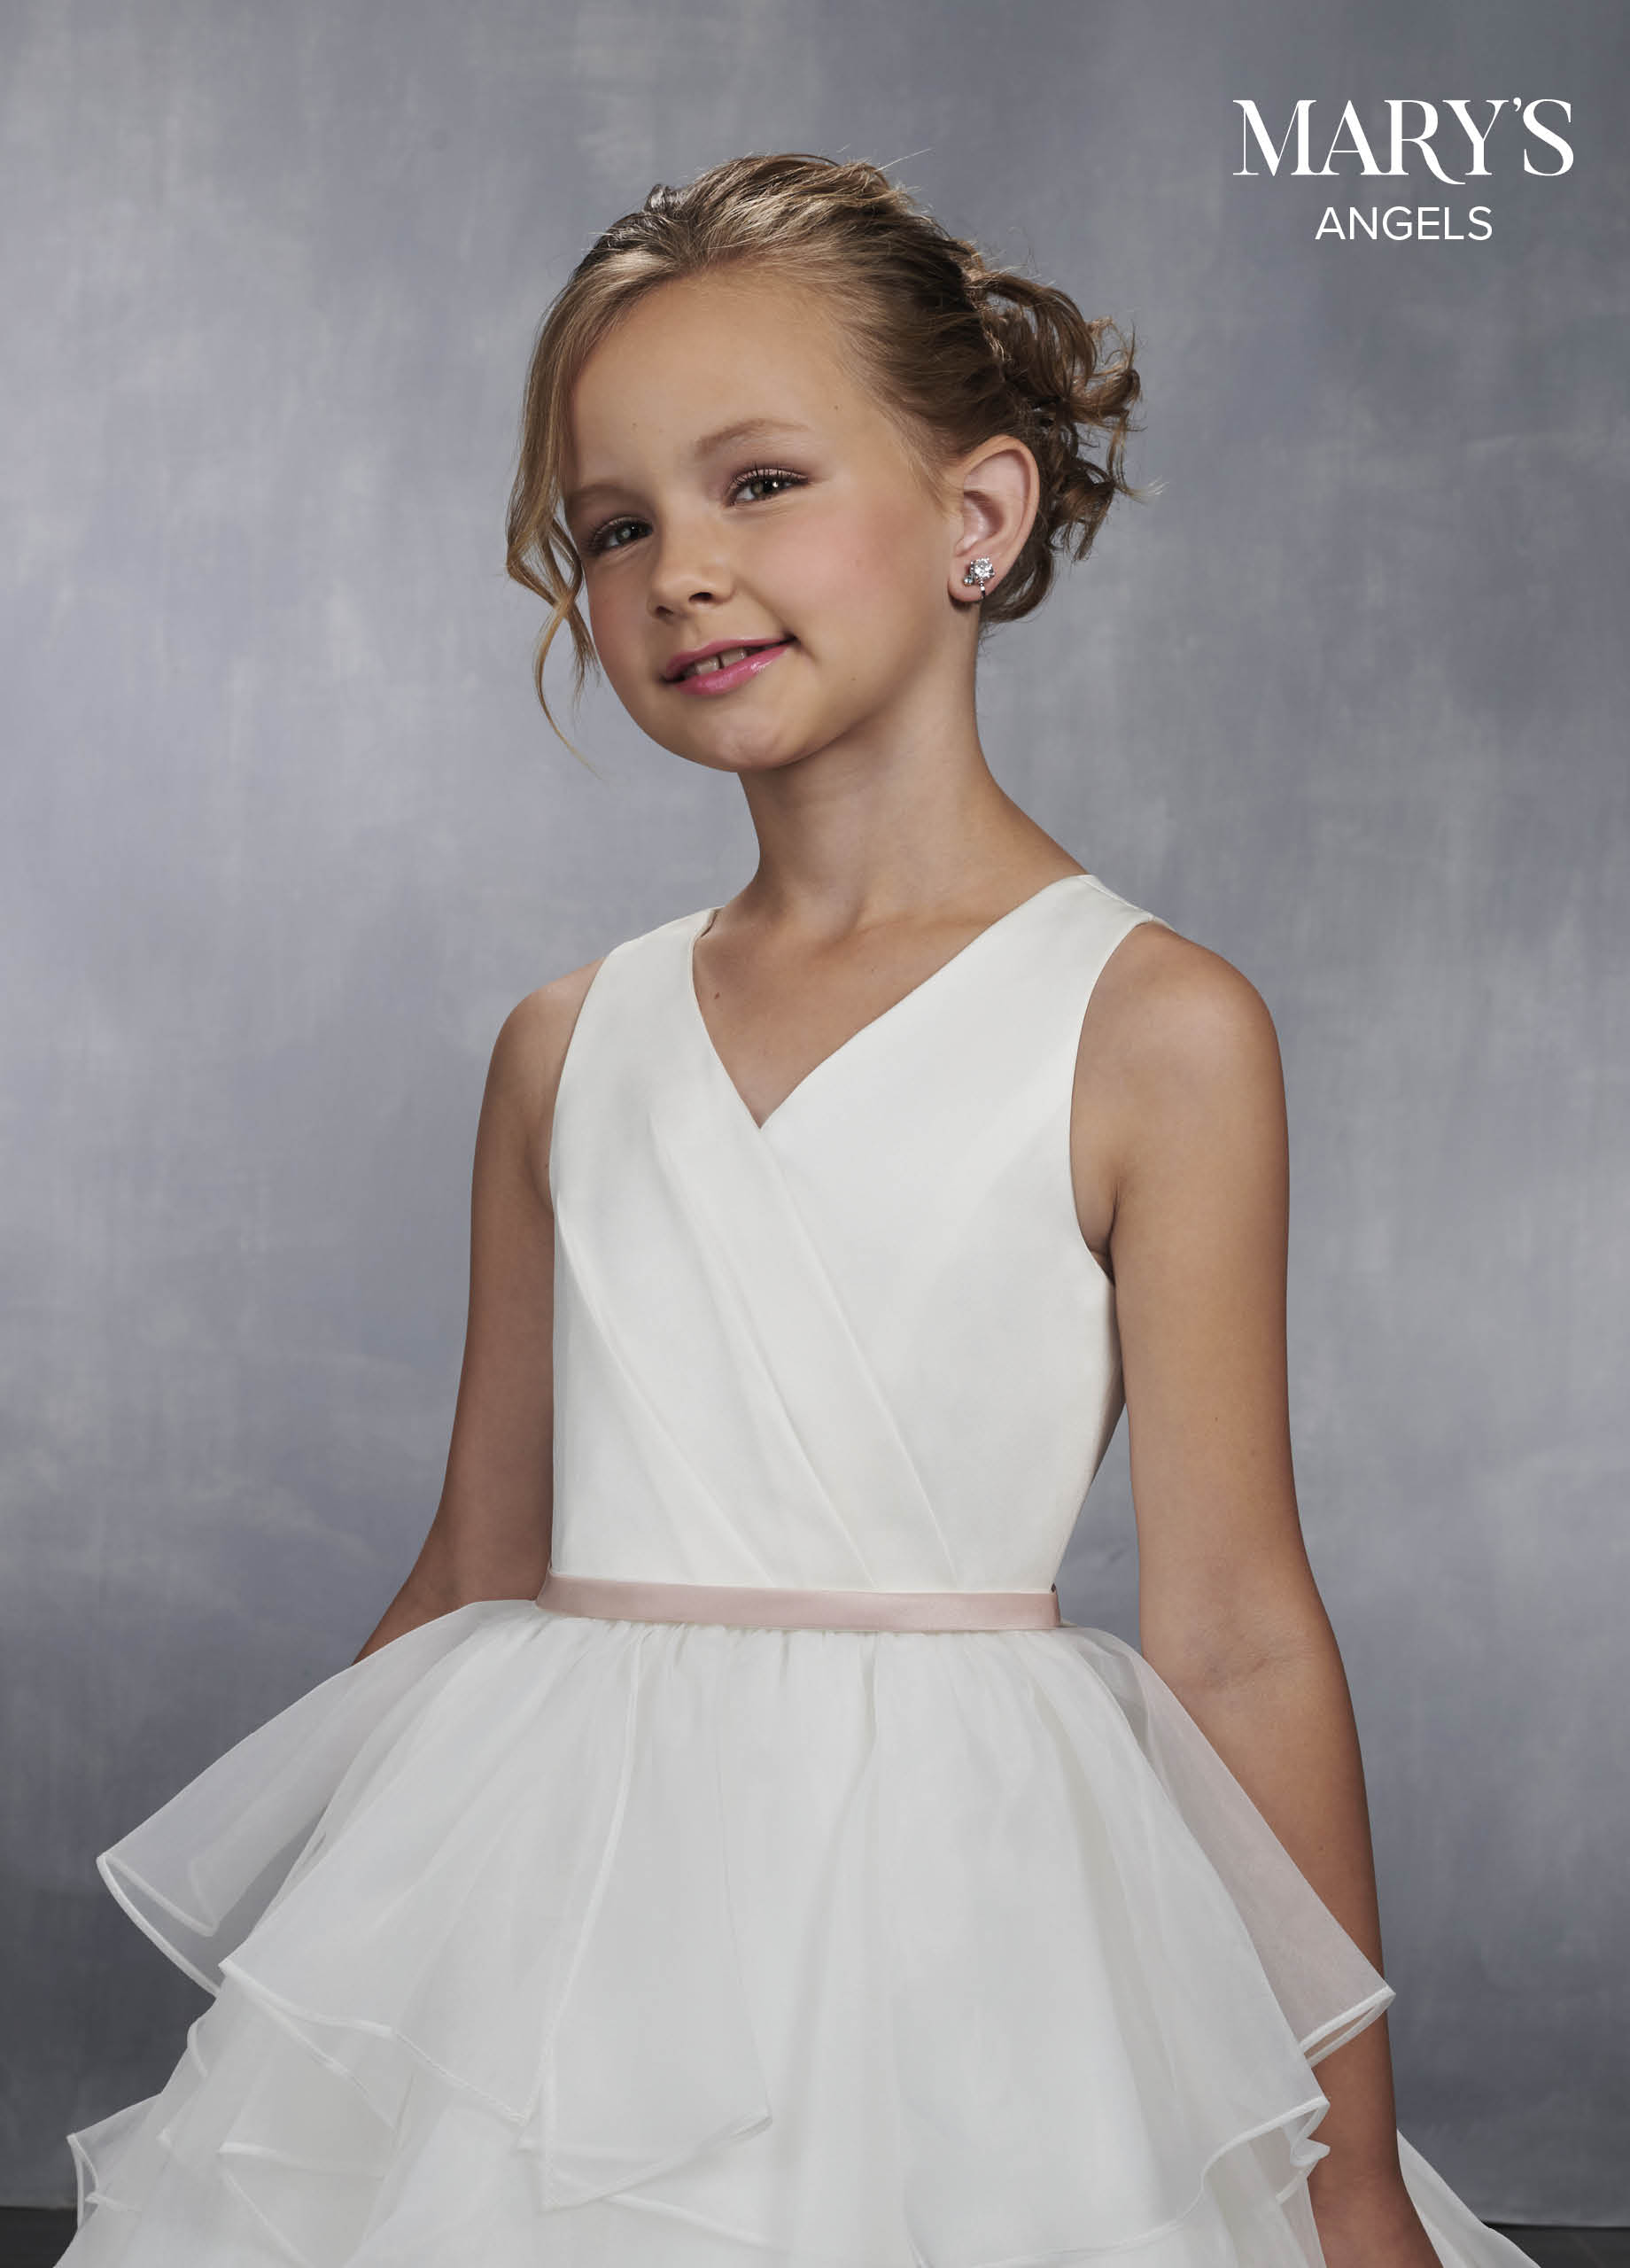 Angel Flower Girl Dresses   Mary's Angels   Style - MB9033